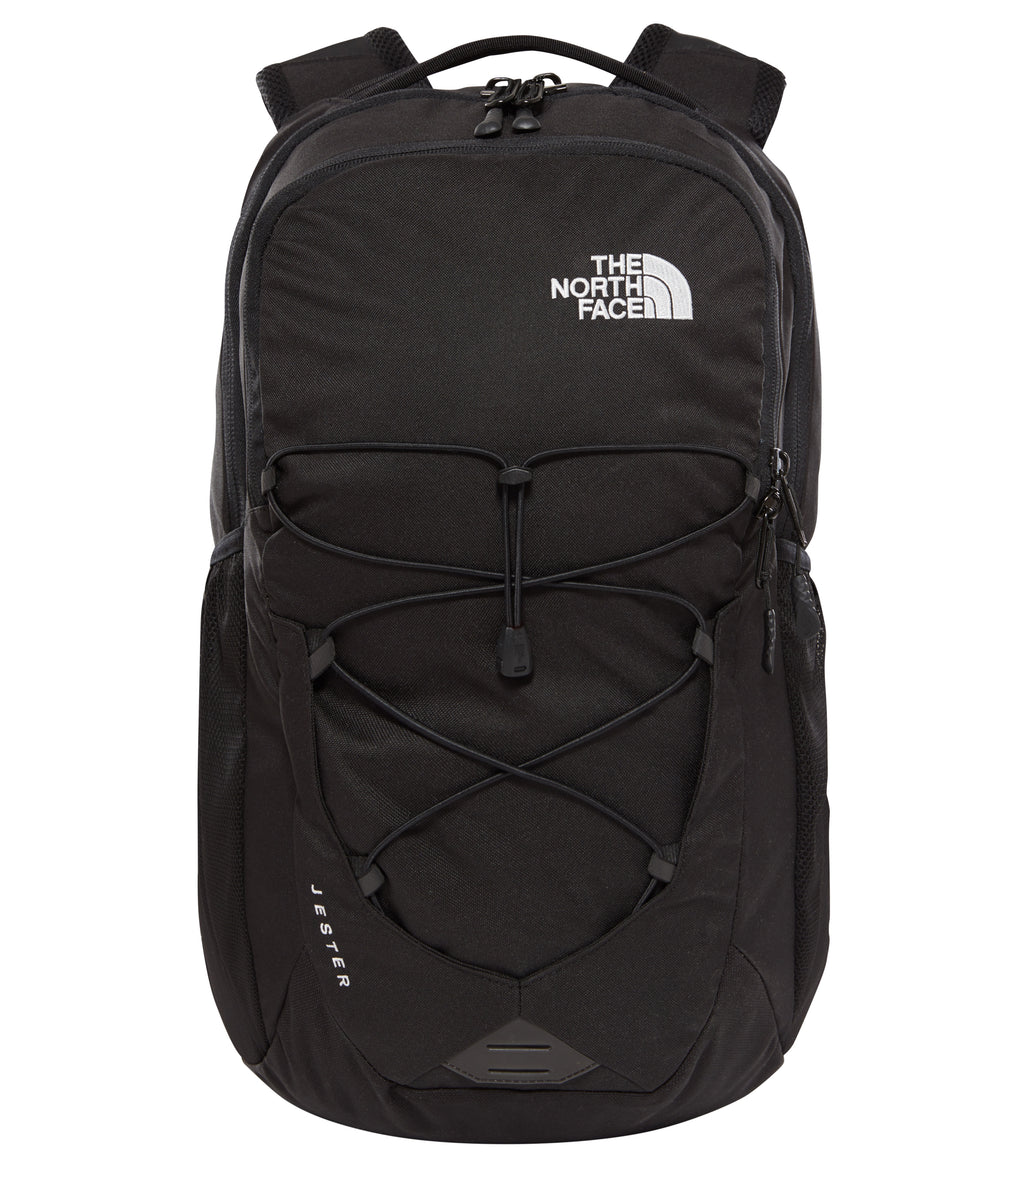 The North Face Jester 26L promotional backpack